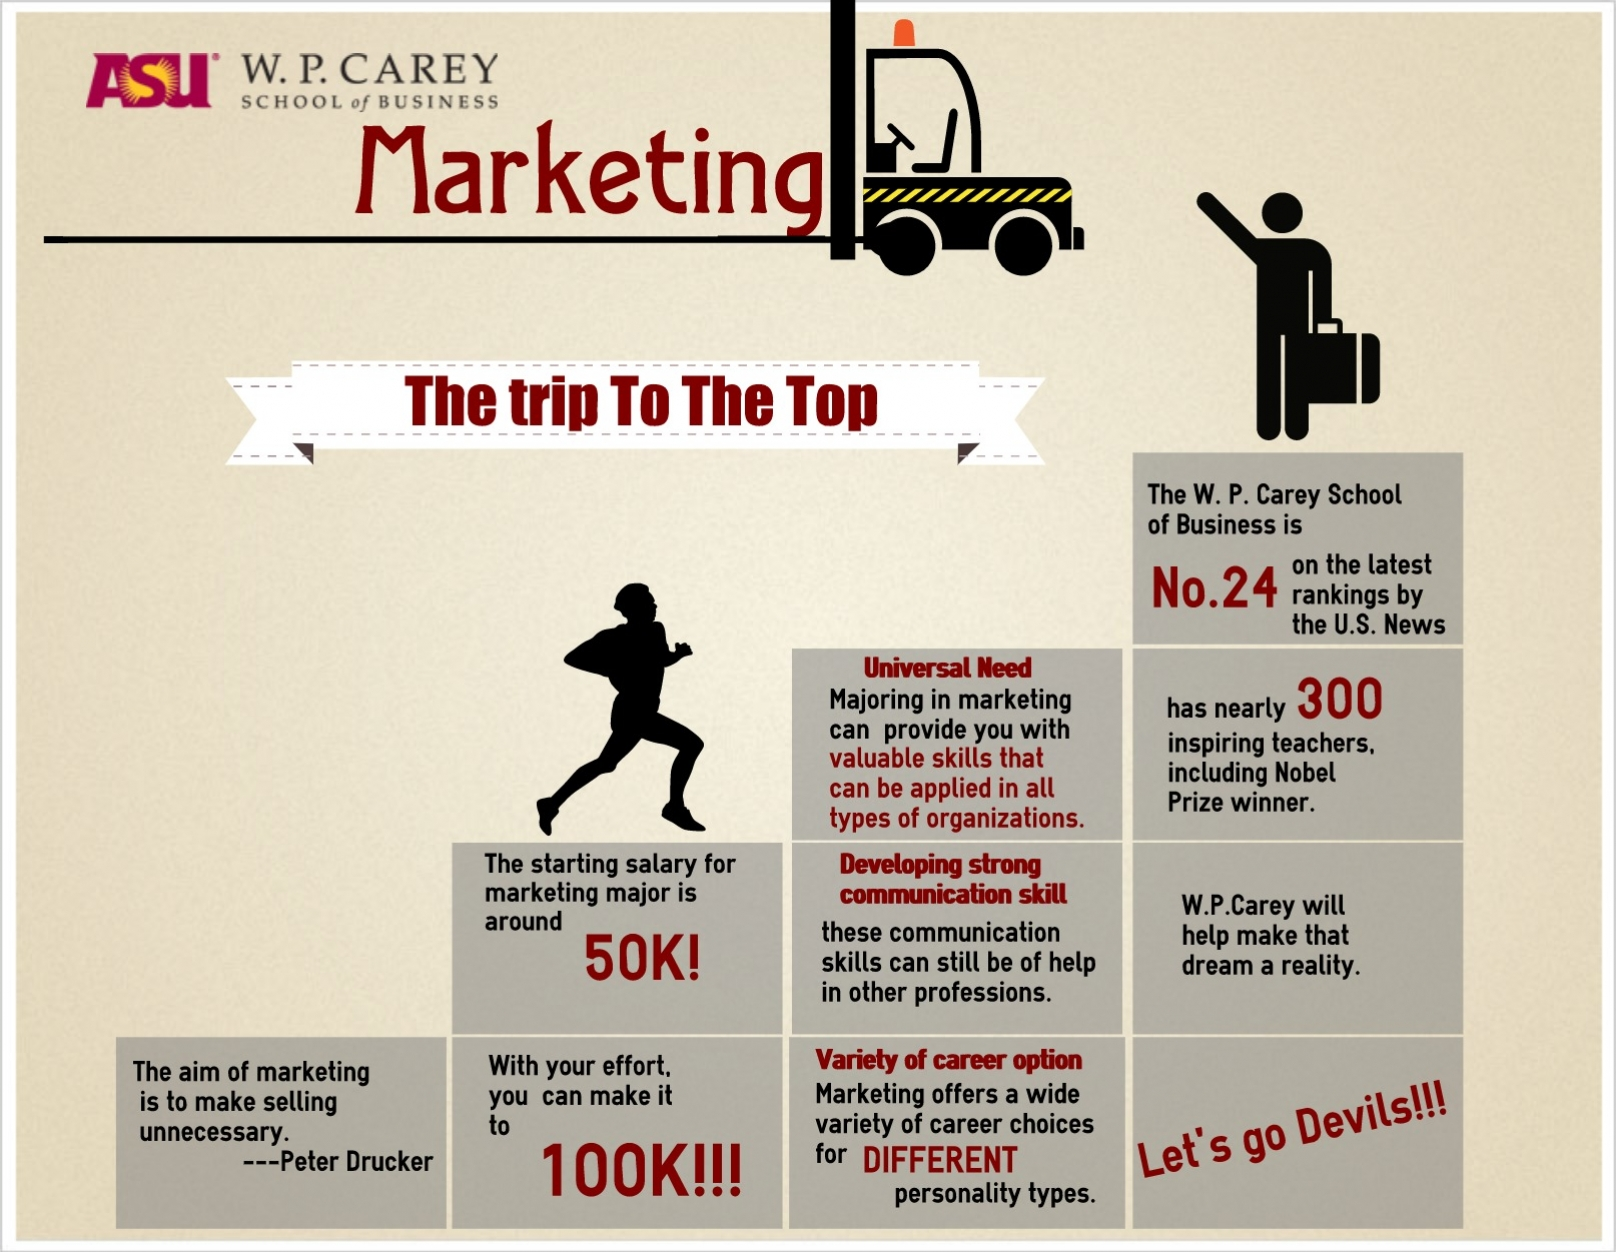 marketing is to make selling unnecessary